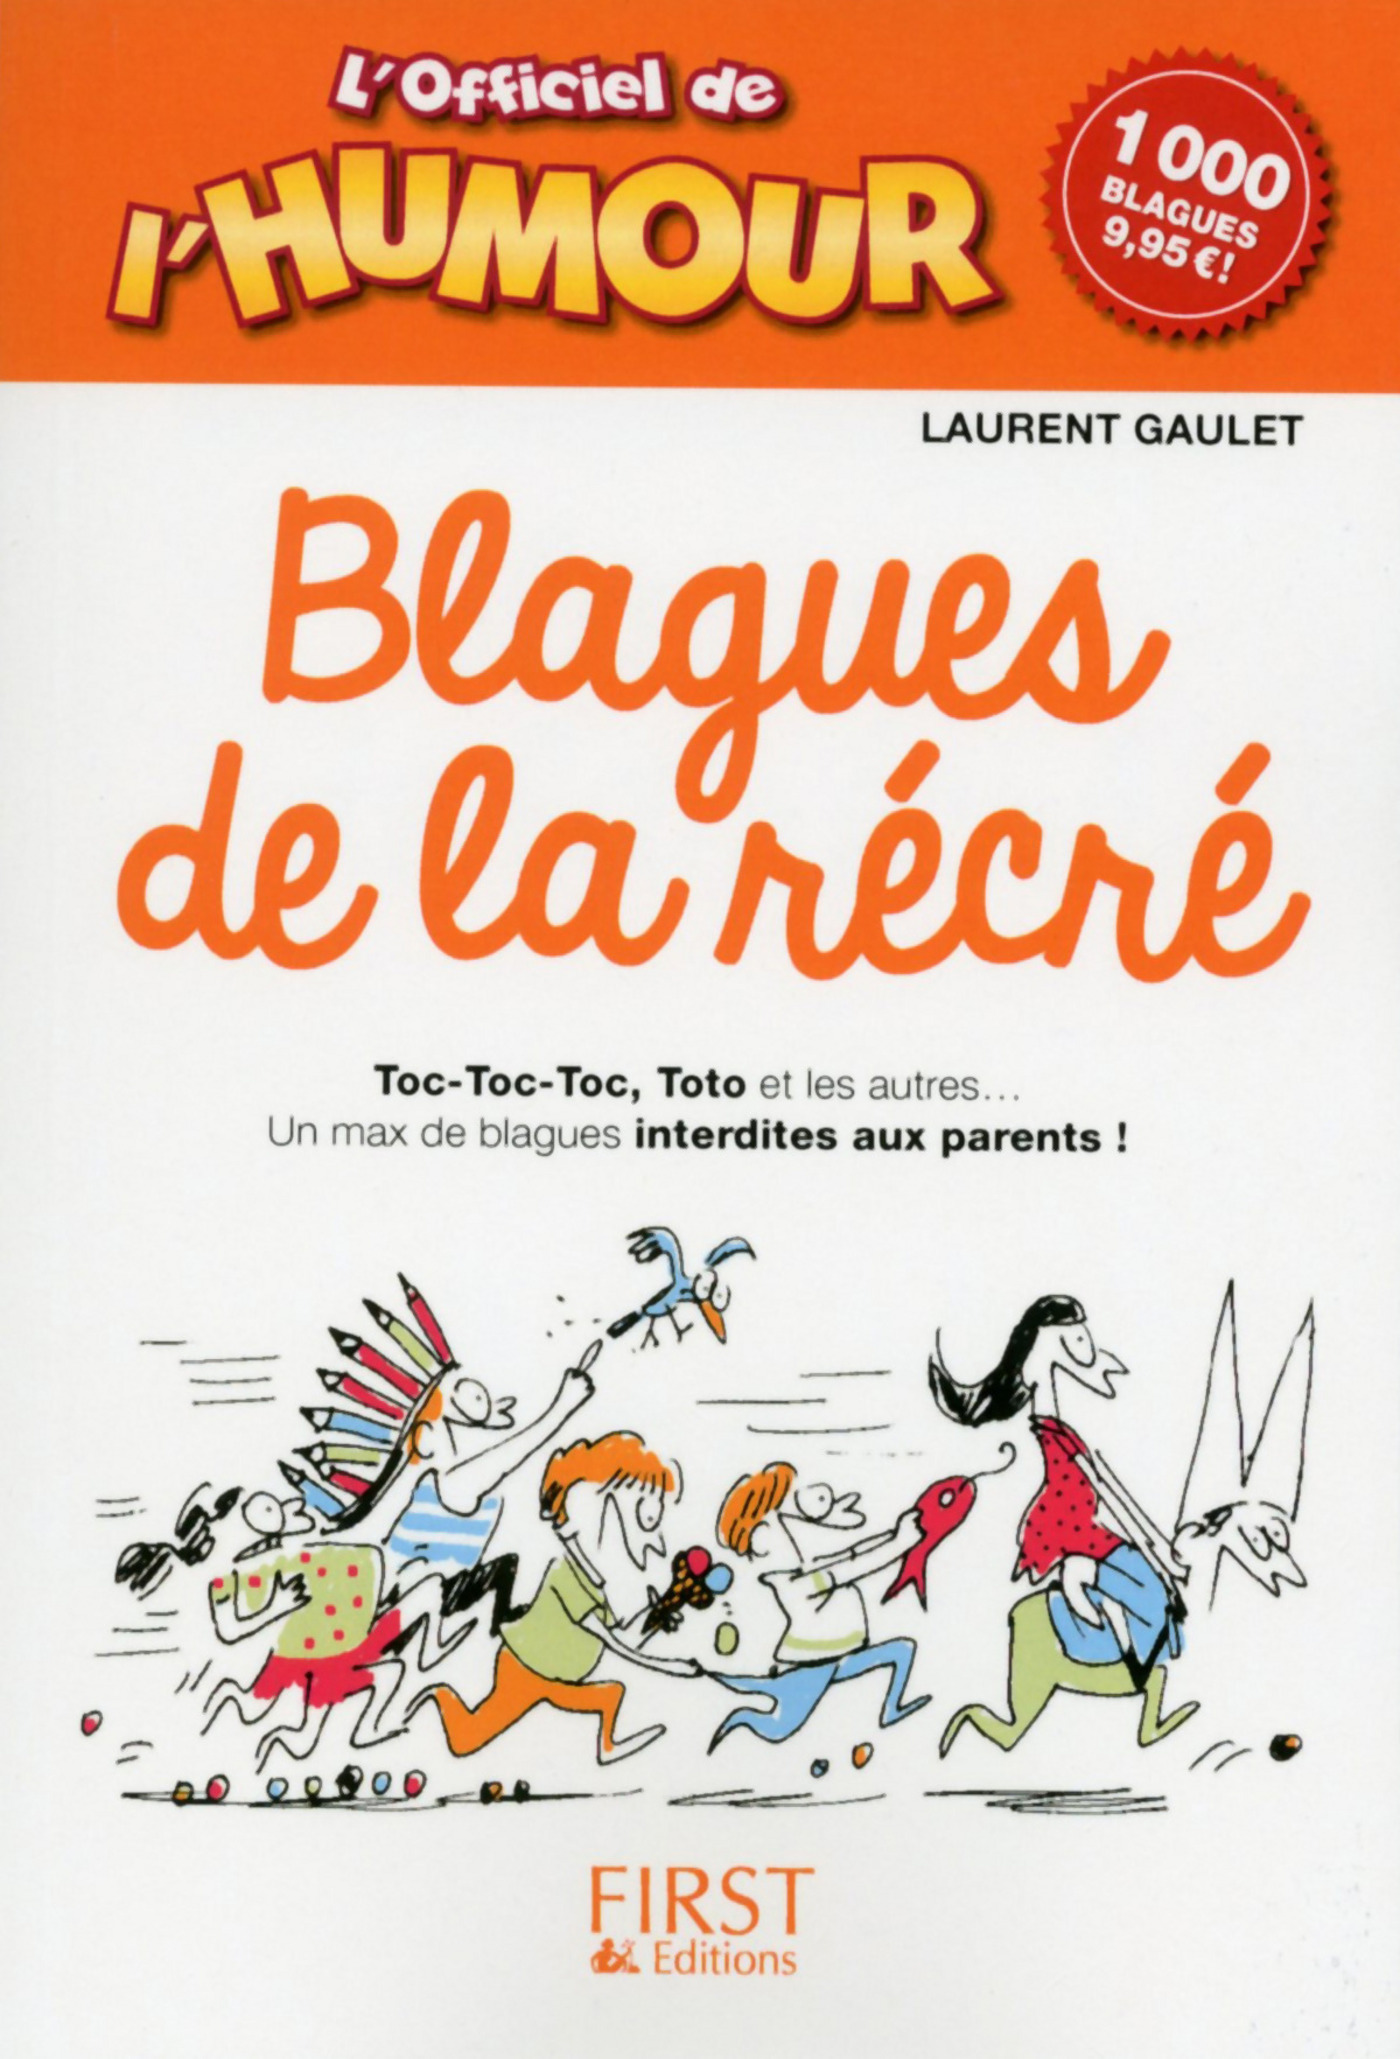 L'Officiel de l'humour - Blagues de la récré (ebook)